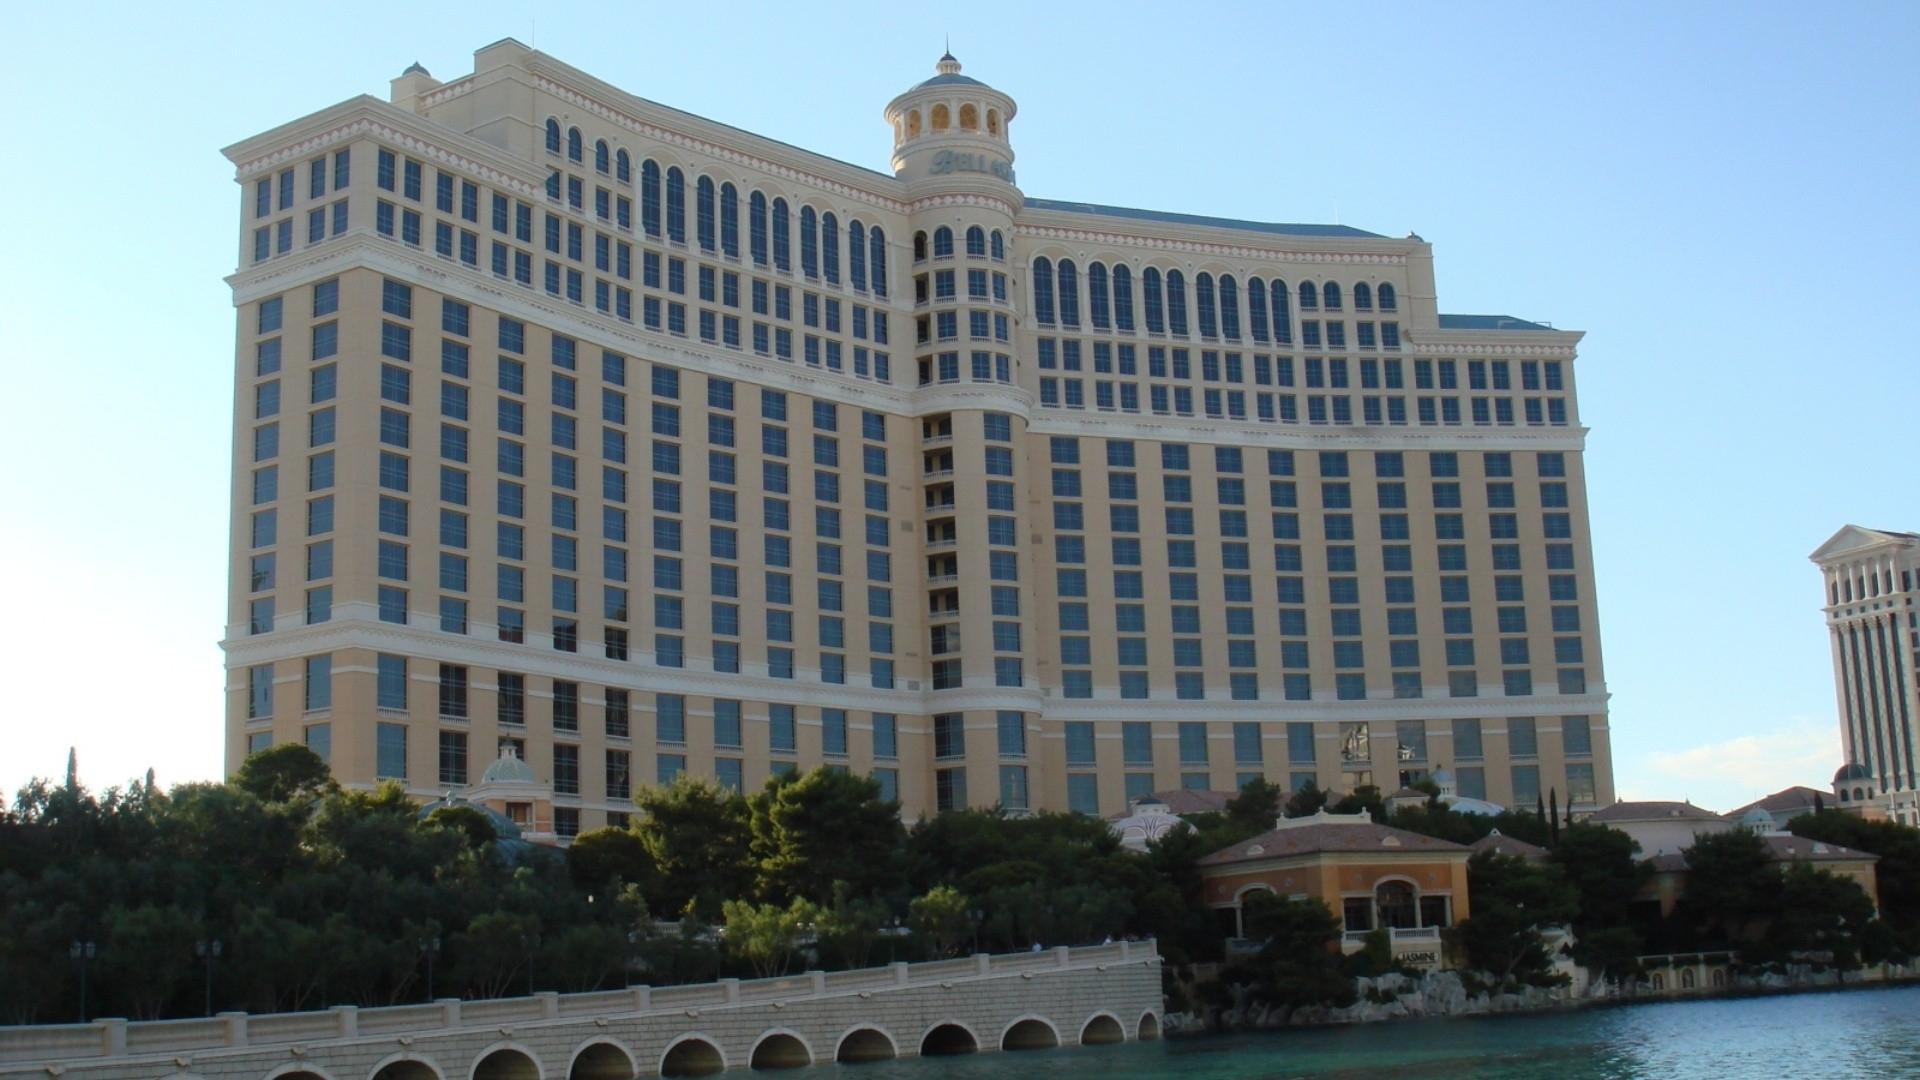 Download Wallpaper 1920x1080 las vegas, buildings, bellagio hotel ...